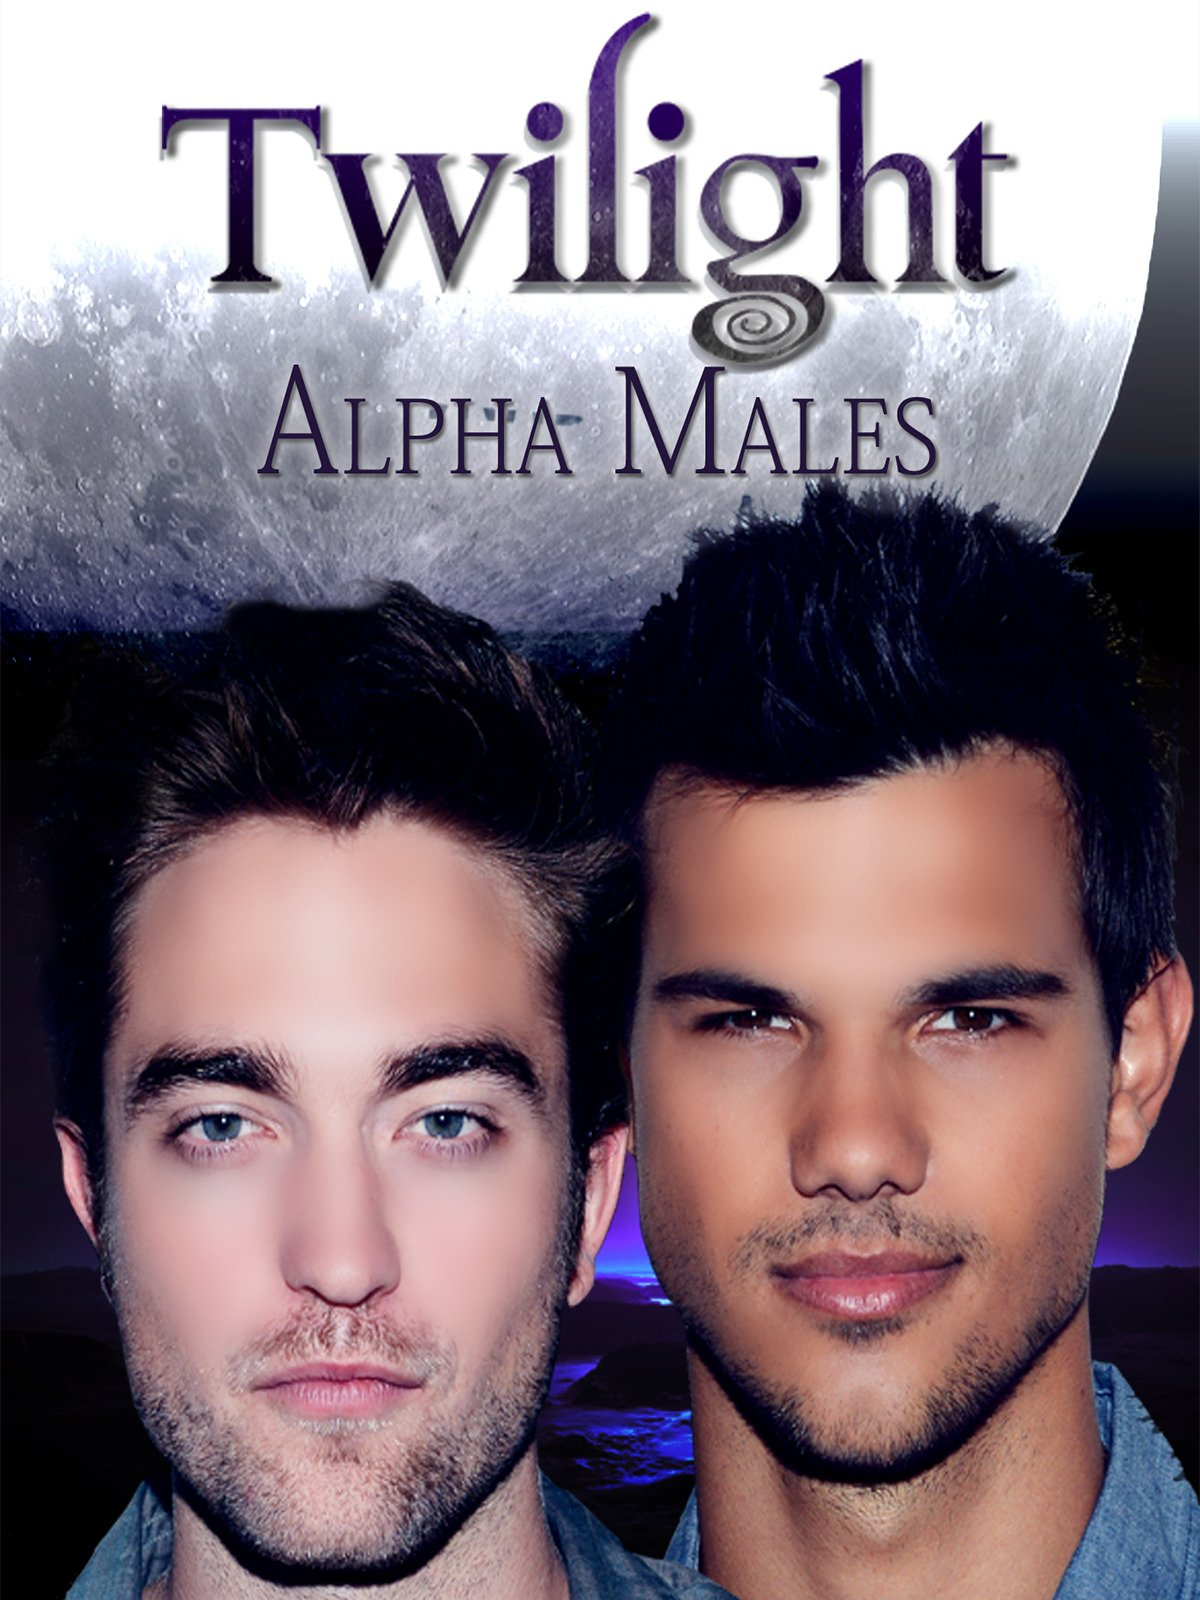 Twilight: Alpha Males